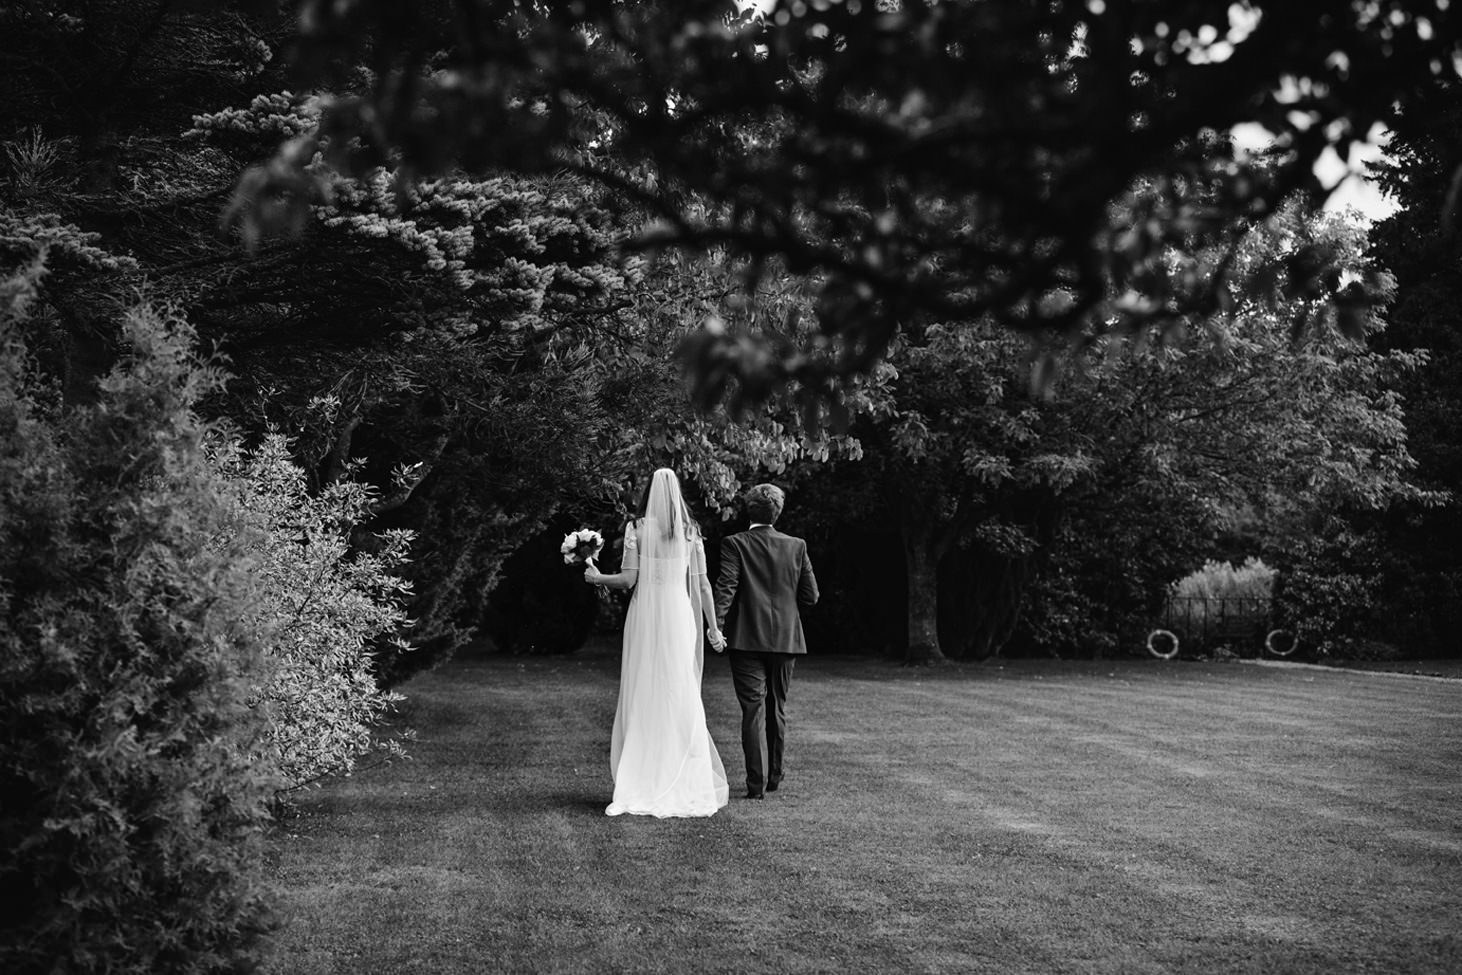 caswell house wedding photography bride and groom walking in garden